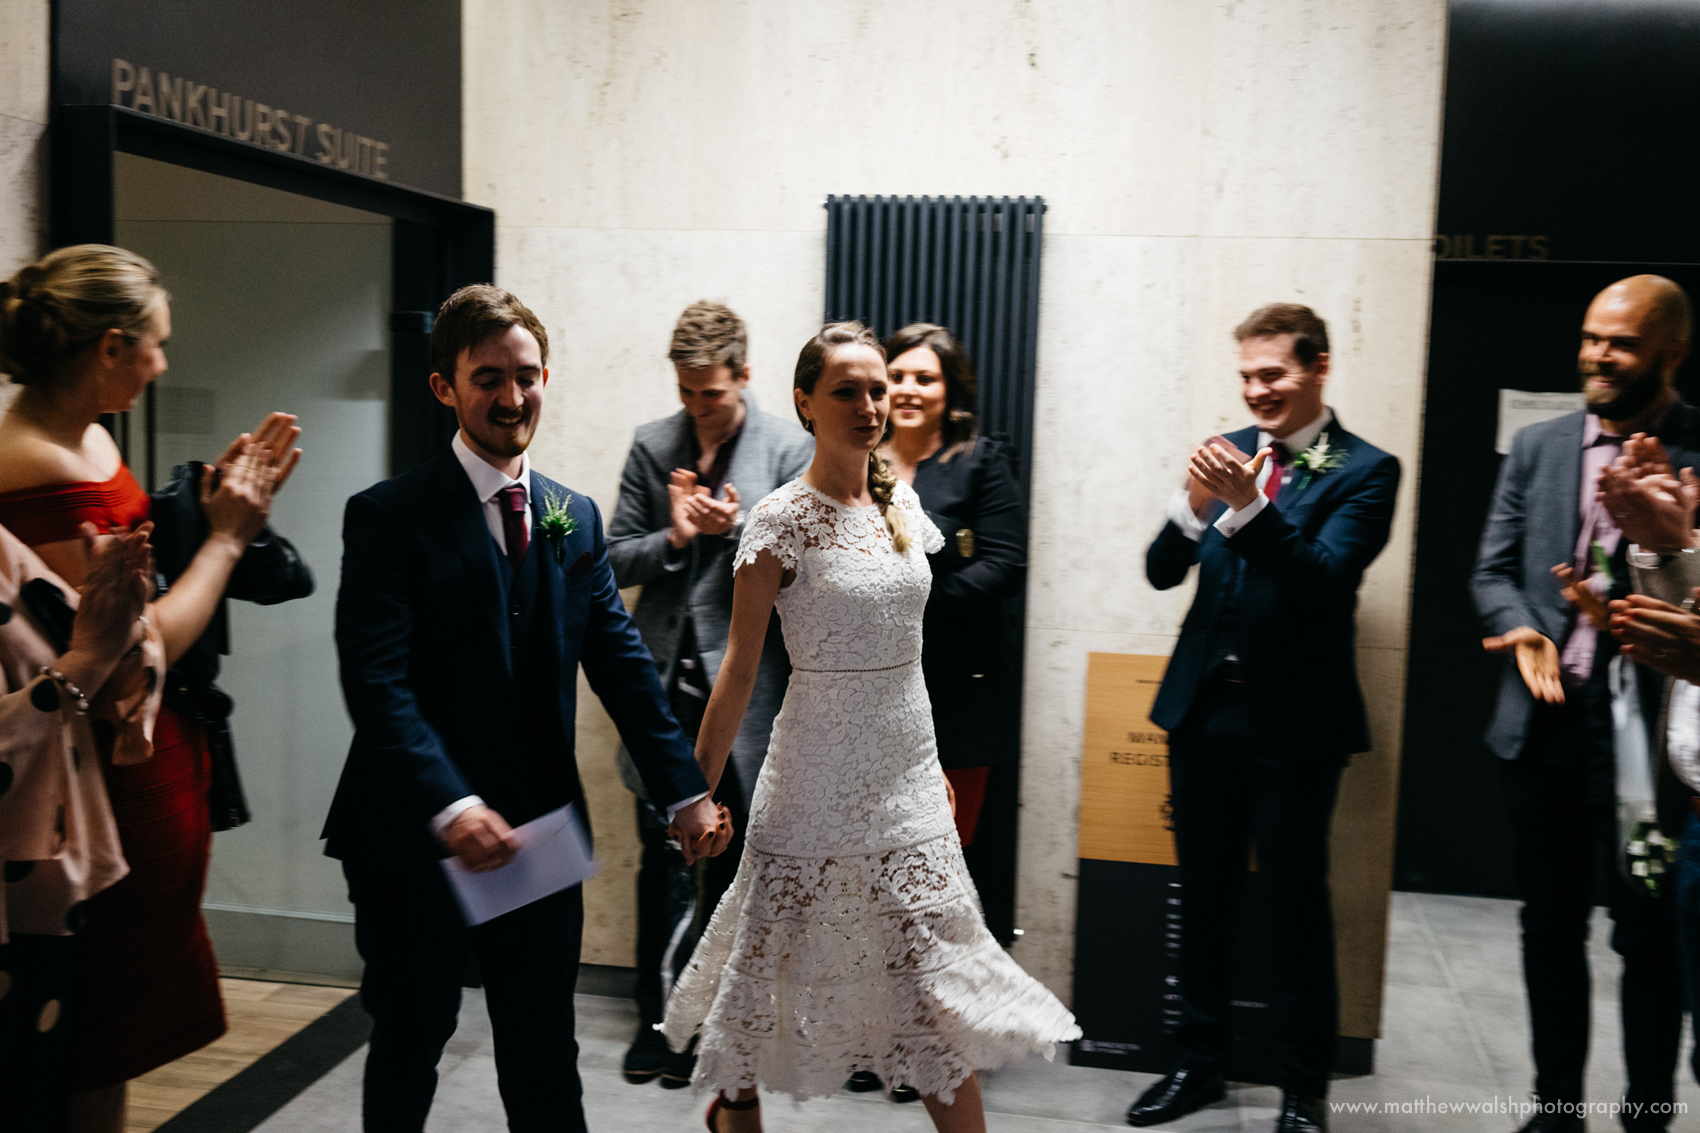 The bride and groom walk out of the ceremony venue to be met by their close friends and family